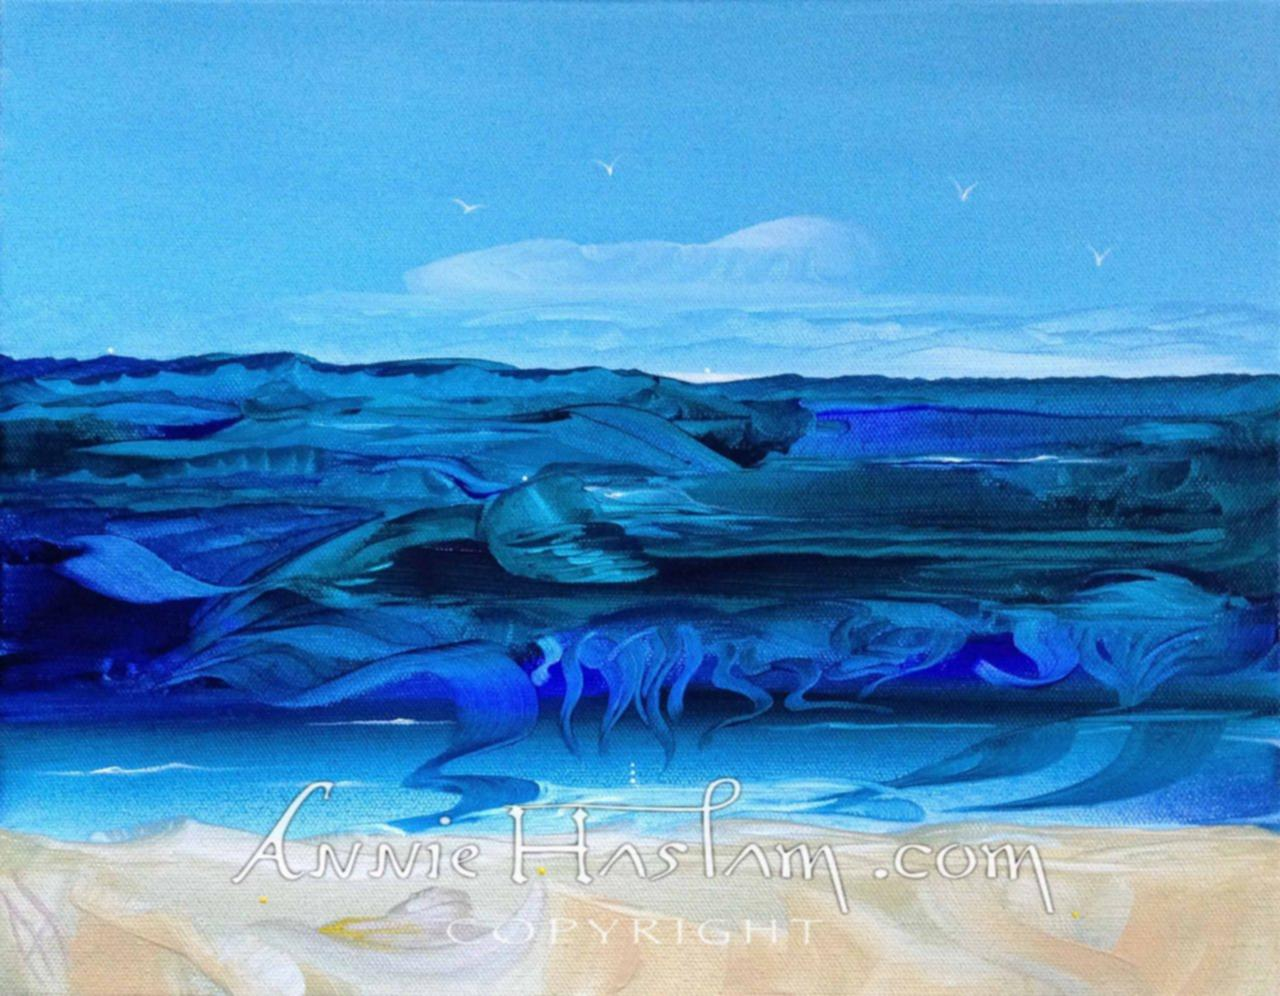 'Sounds of the Sea'